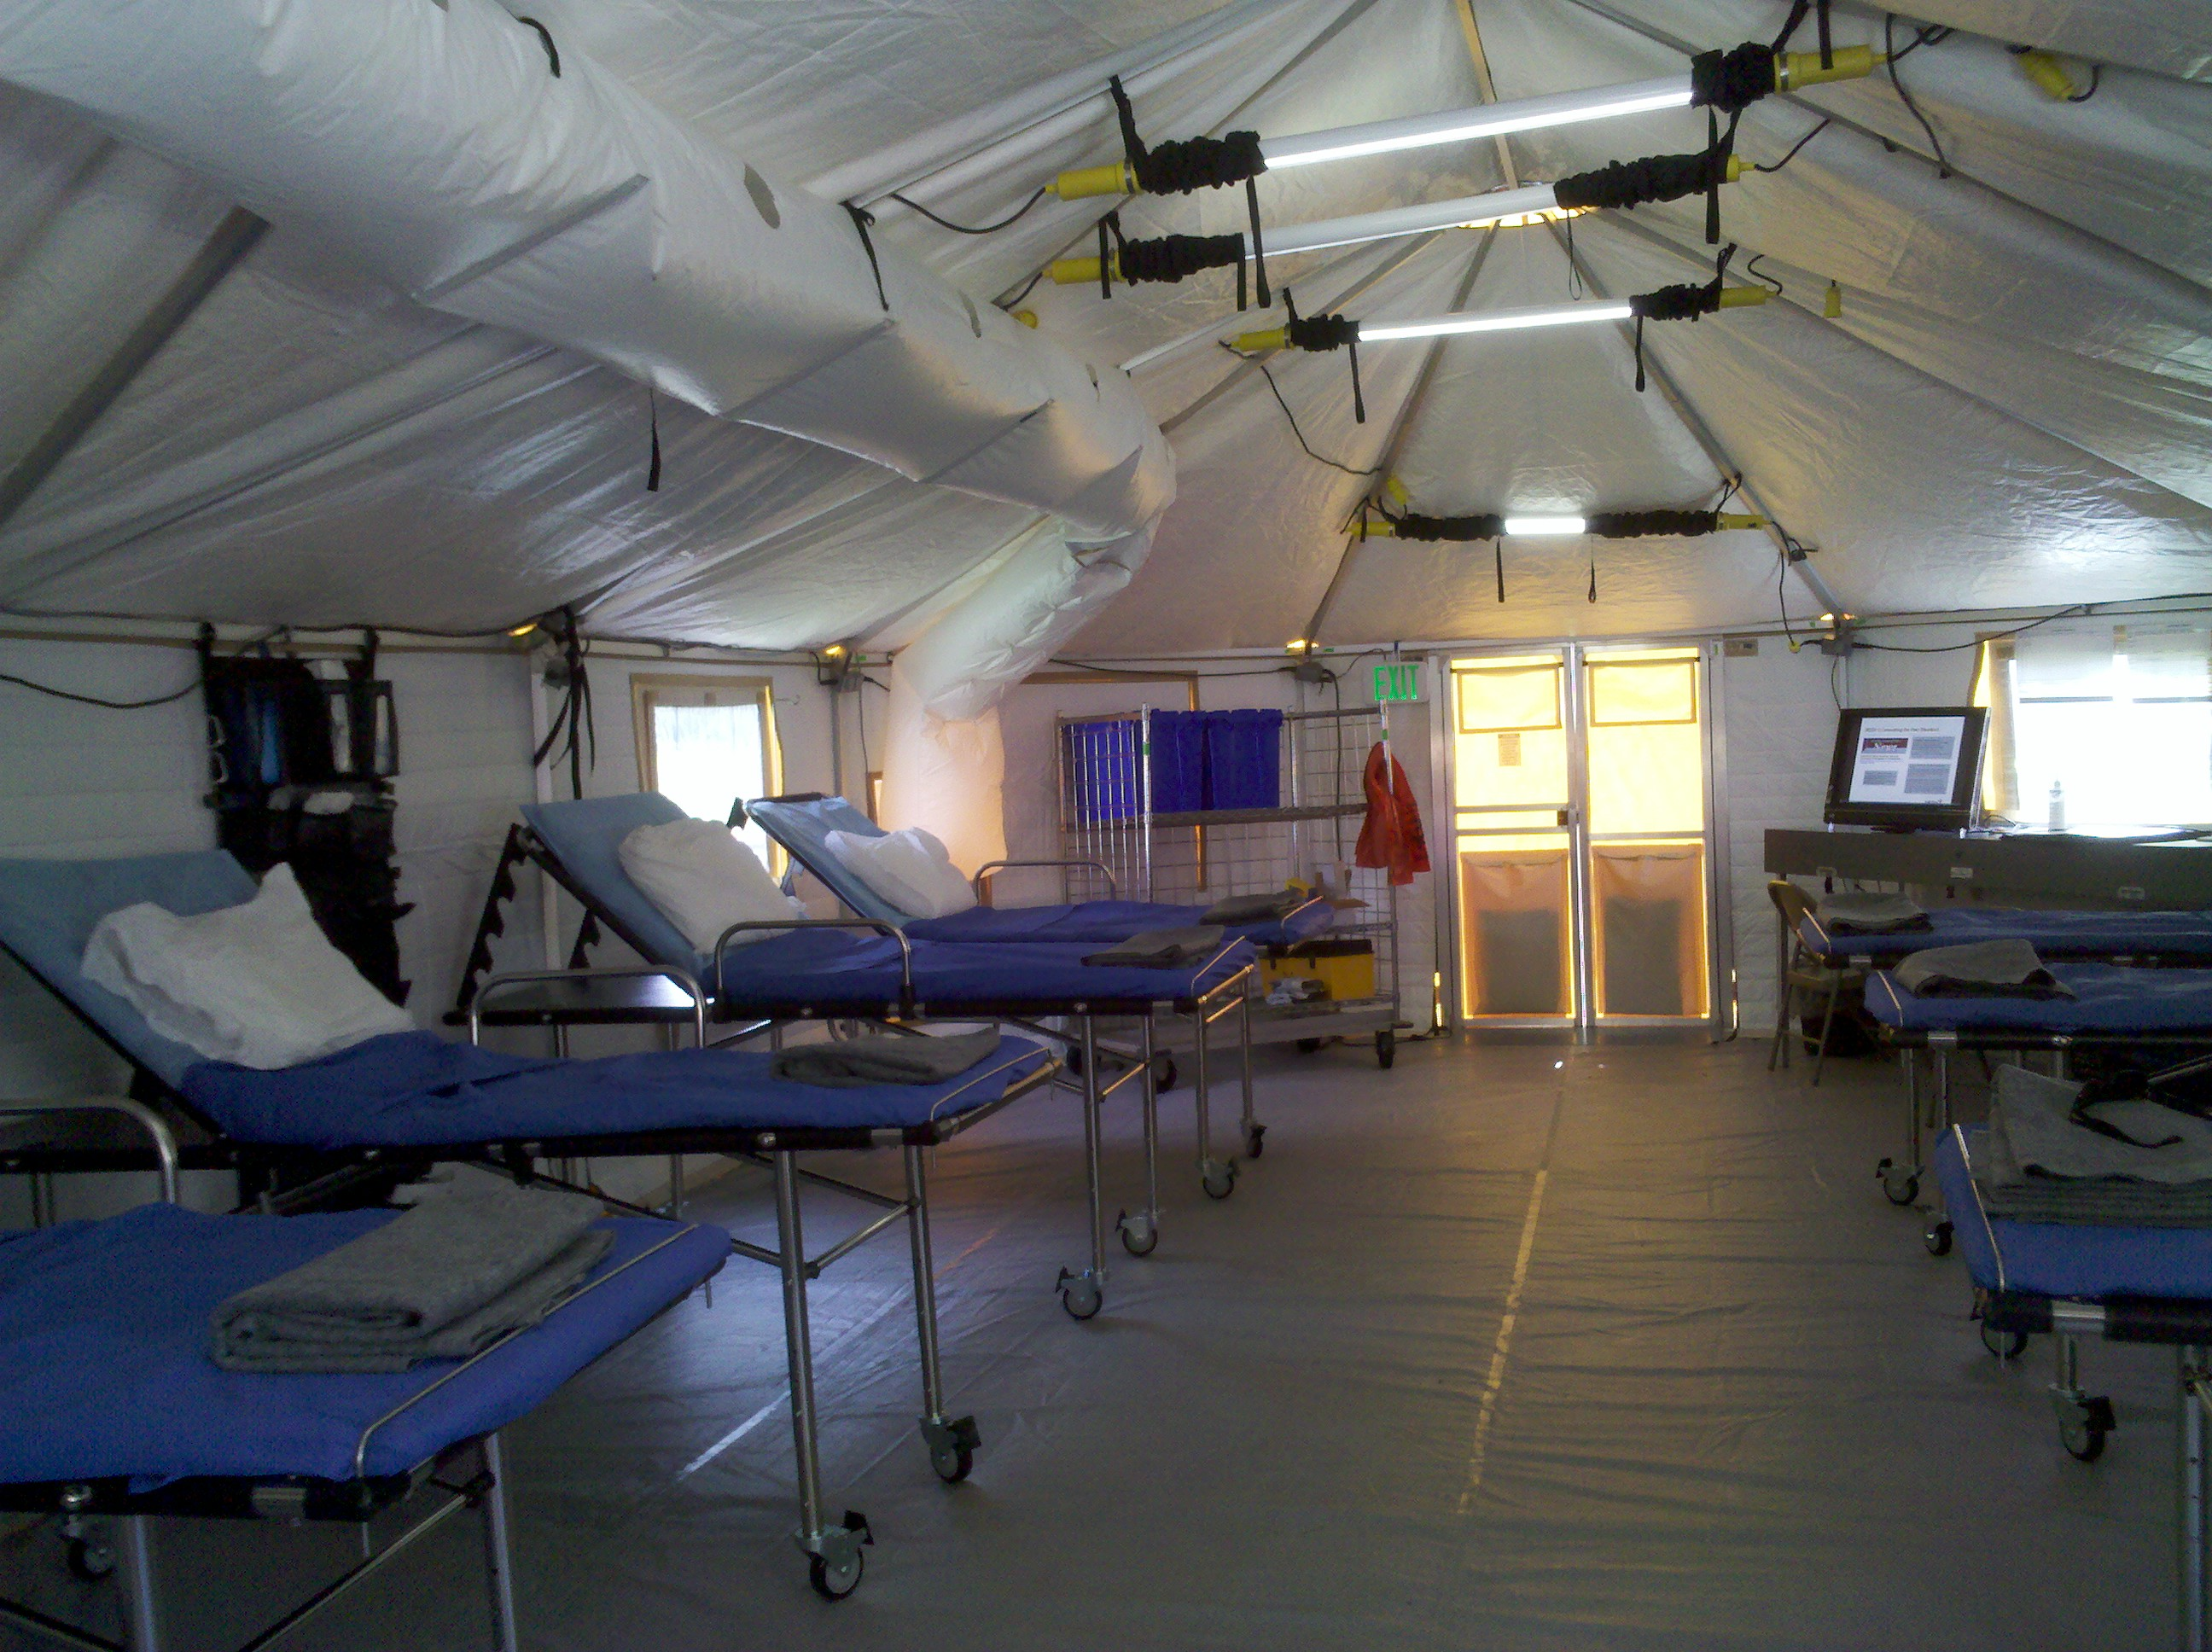 Emergency Tent Shelter Lighting For Disaster Relief